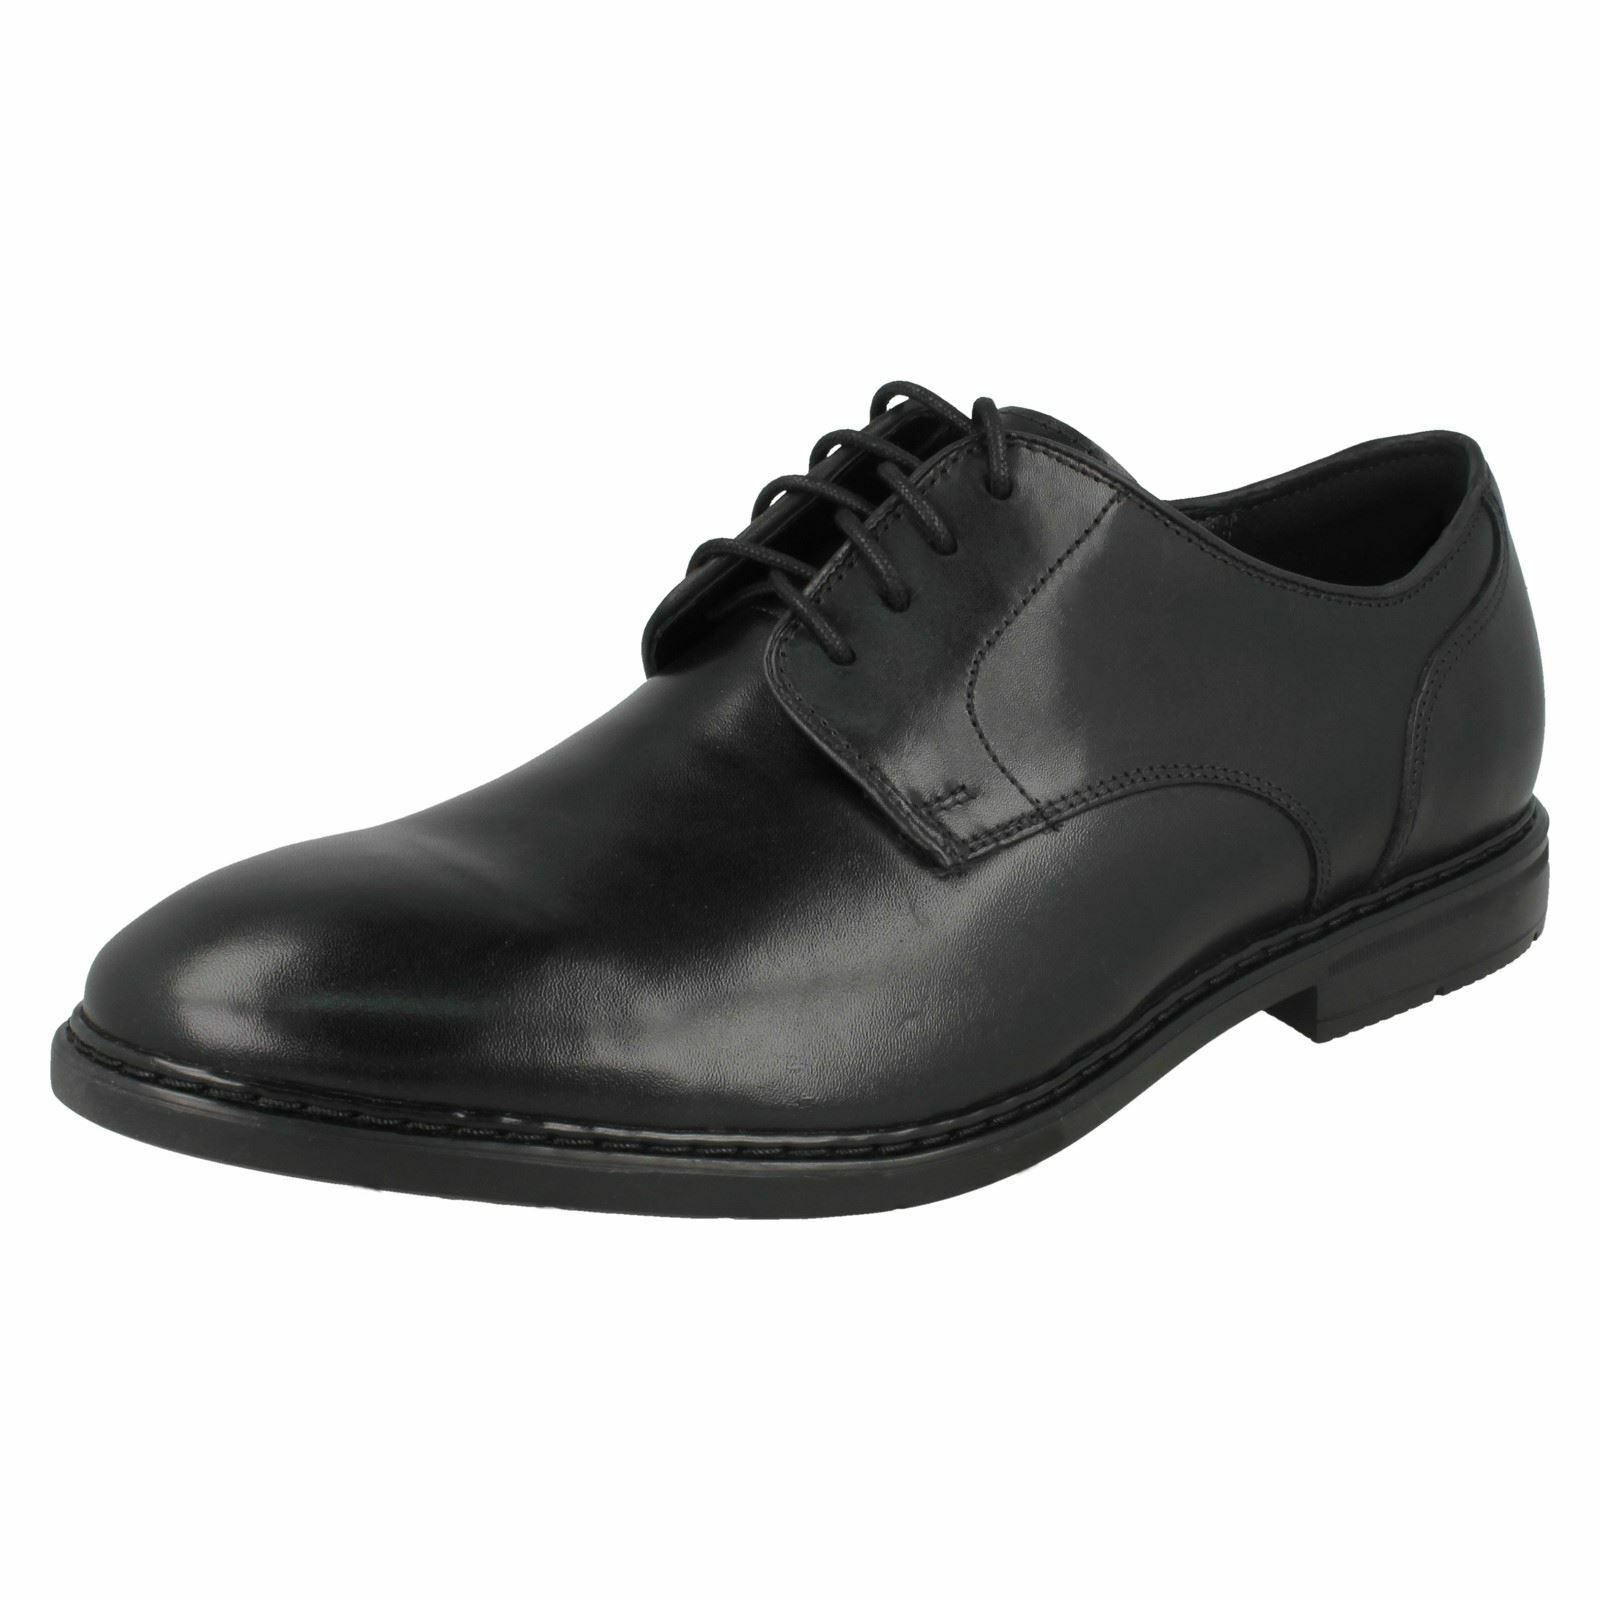 Mens Clarks Banbury Lace Smart Leather Lace Up Shoes G Fitting